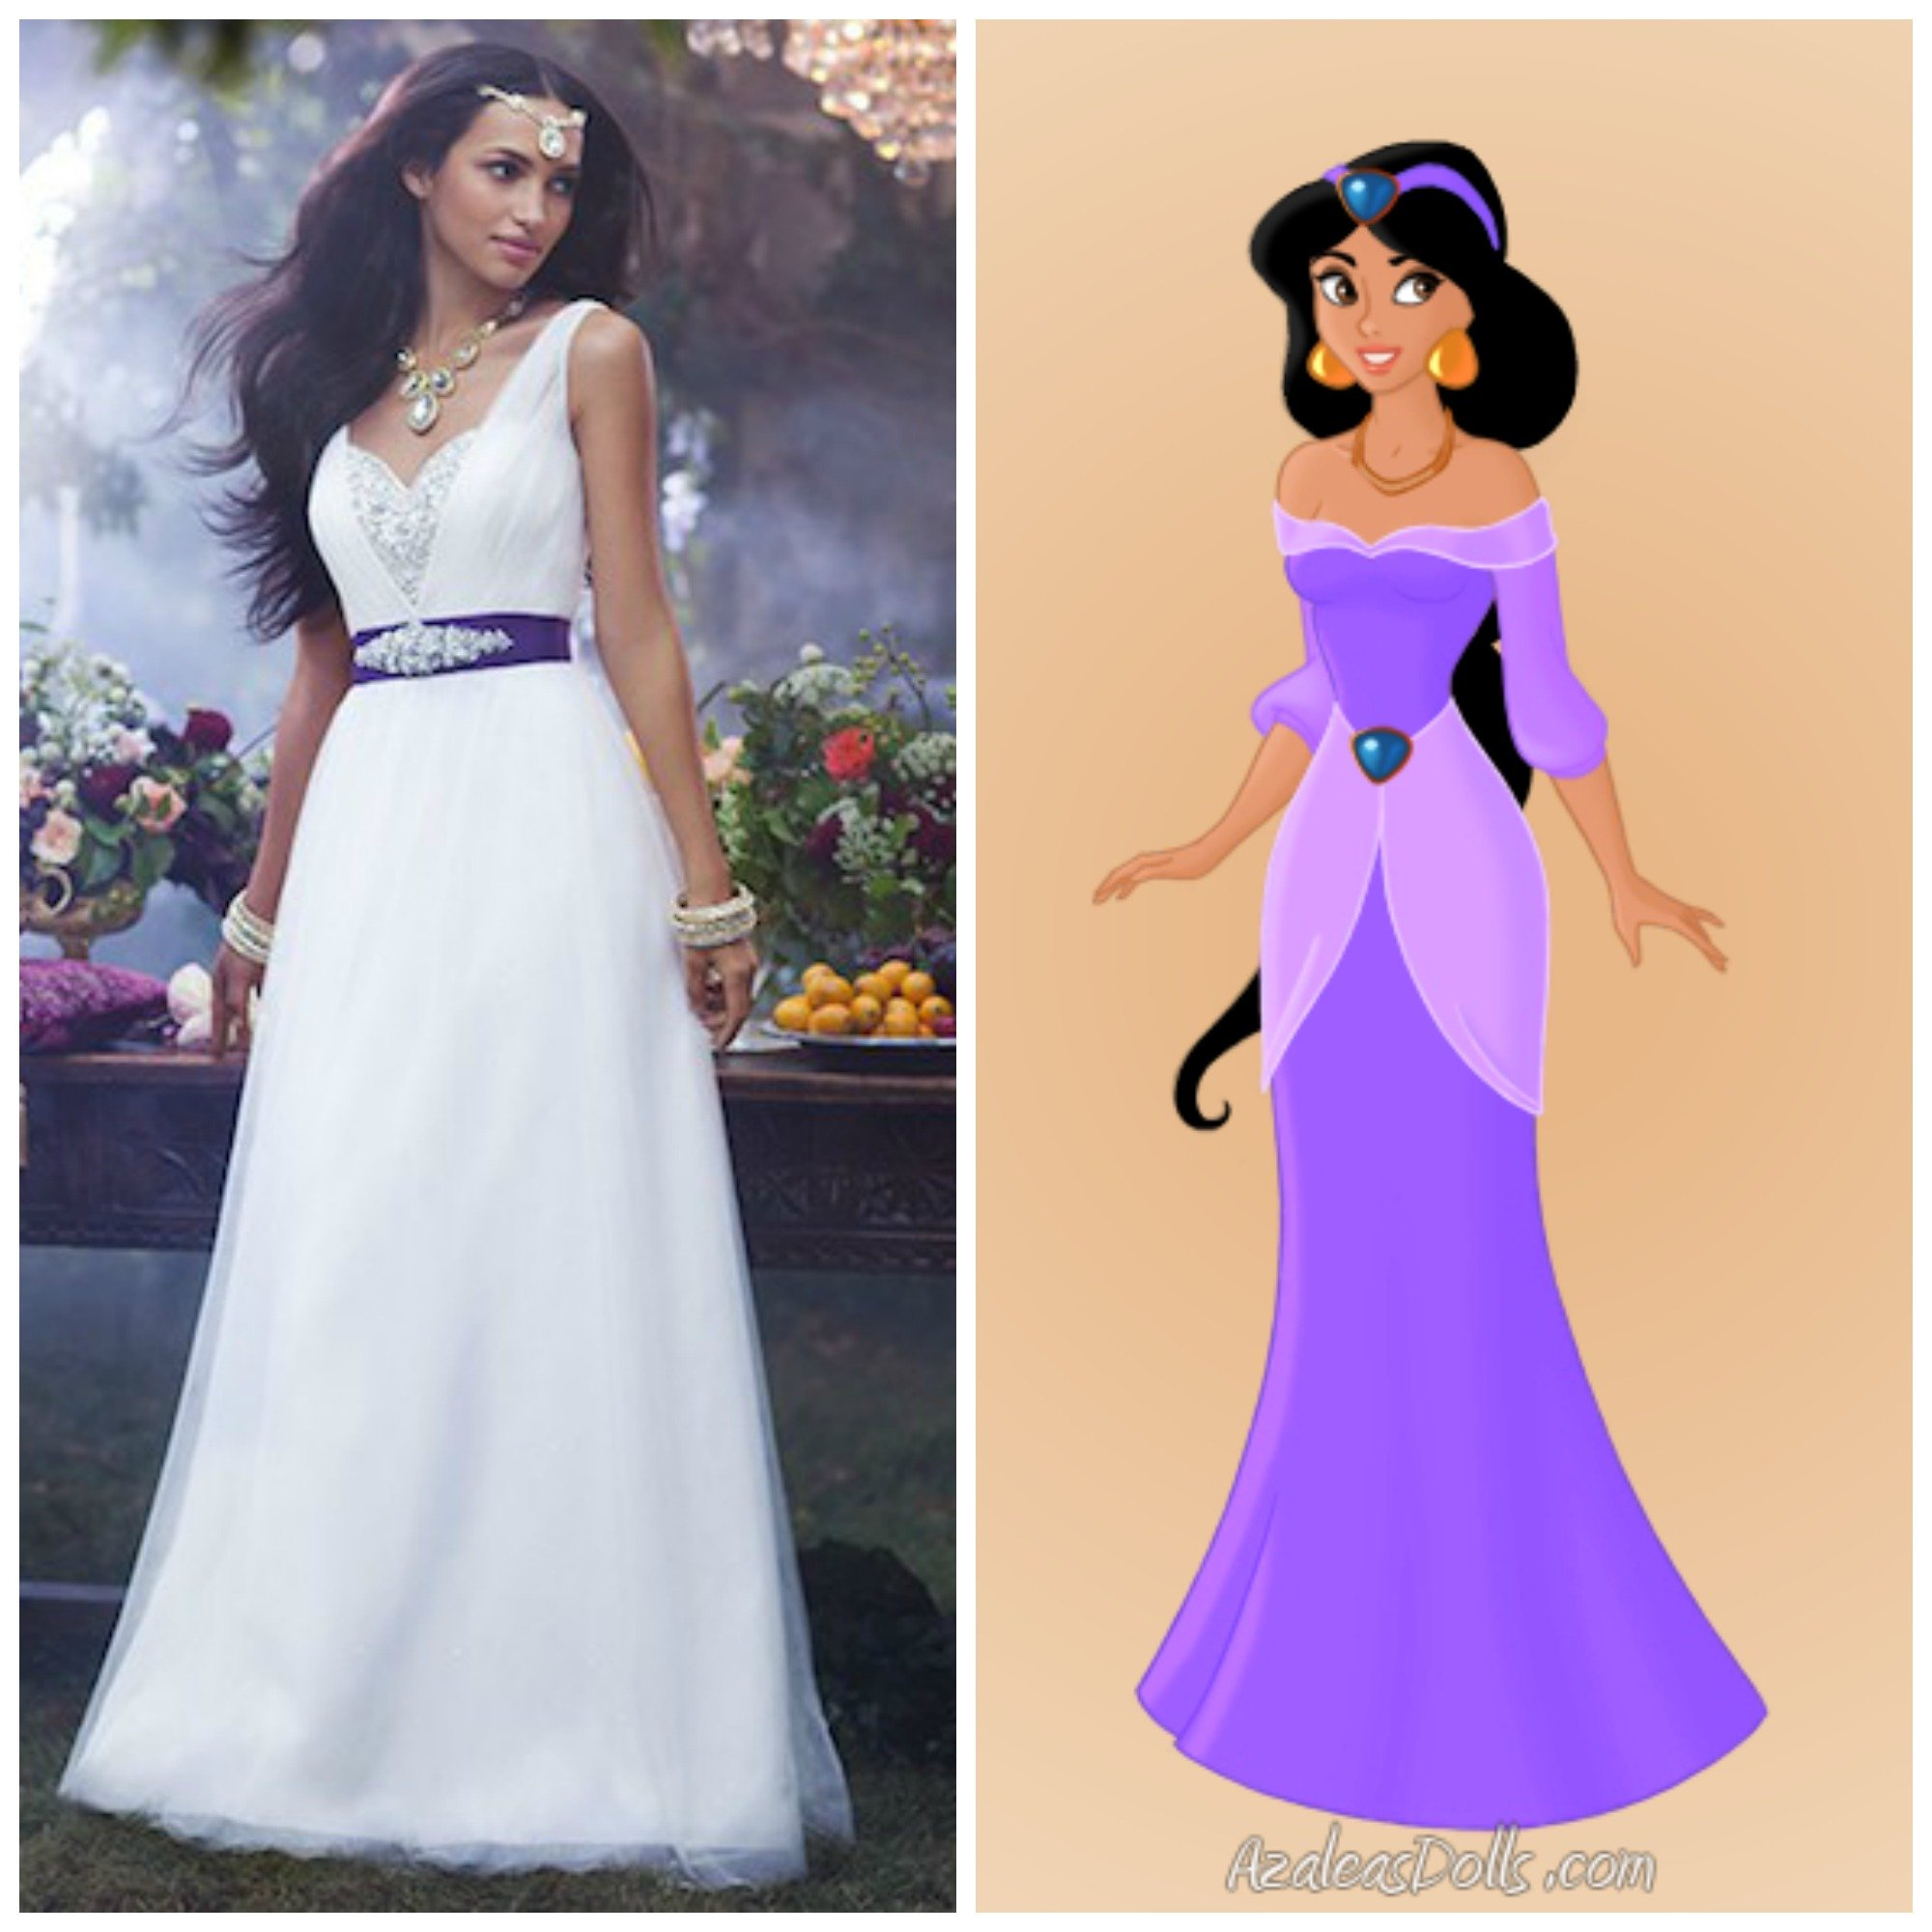 Disney Princess Wedding Day Dress Up Games : Princess jasmine dress up who auto design tech